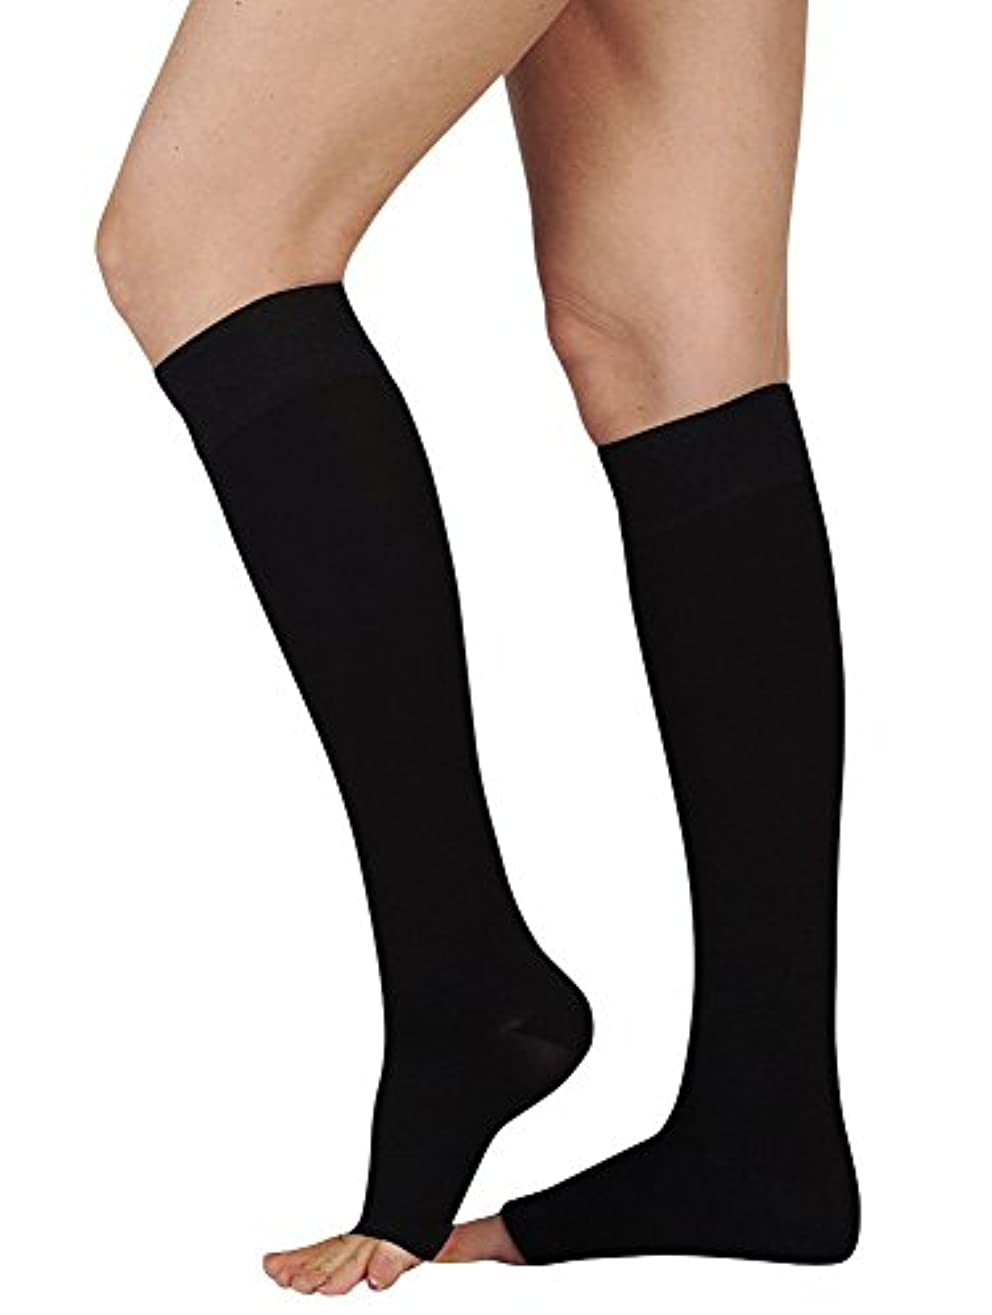 におい識字苦痛Juzo Soft Knee High With Silicone Dot Band 20-30mmHg Closed Toe, II, Black by Juzo